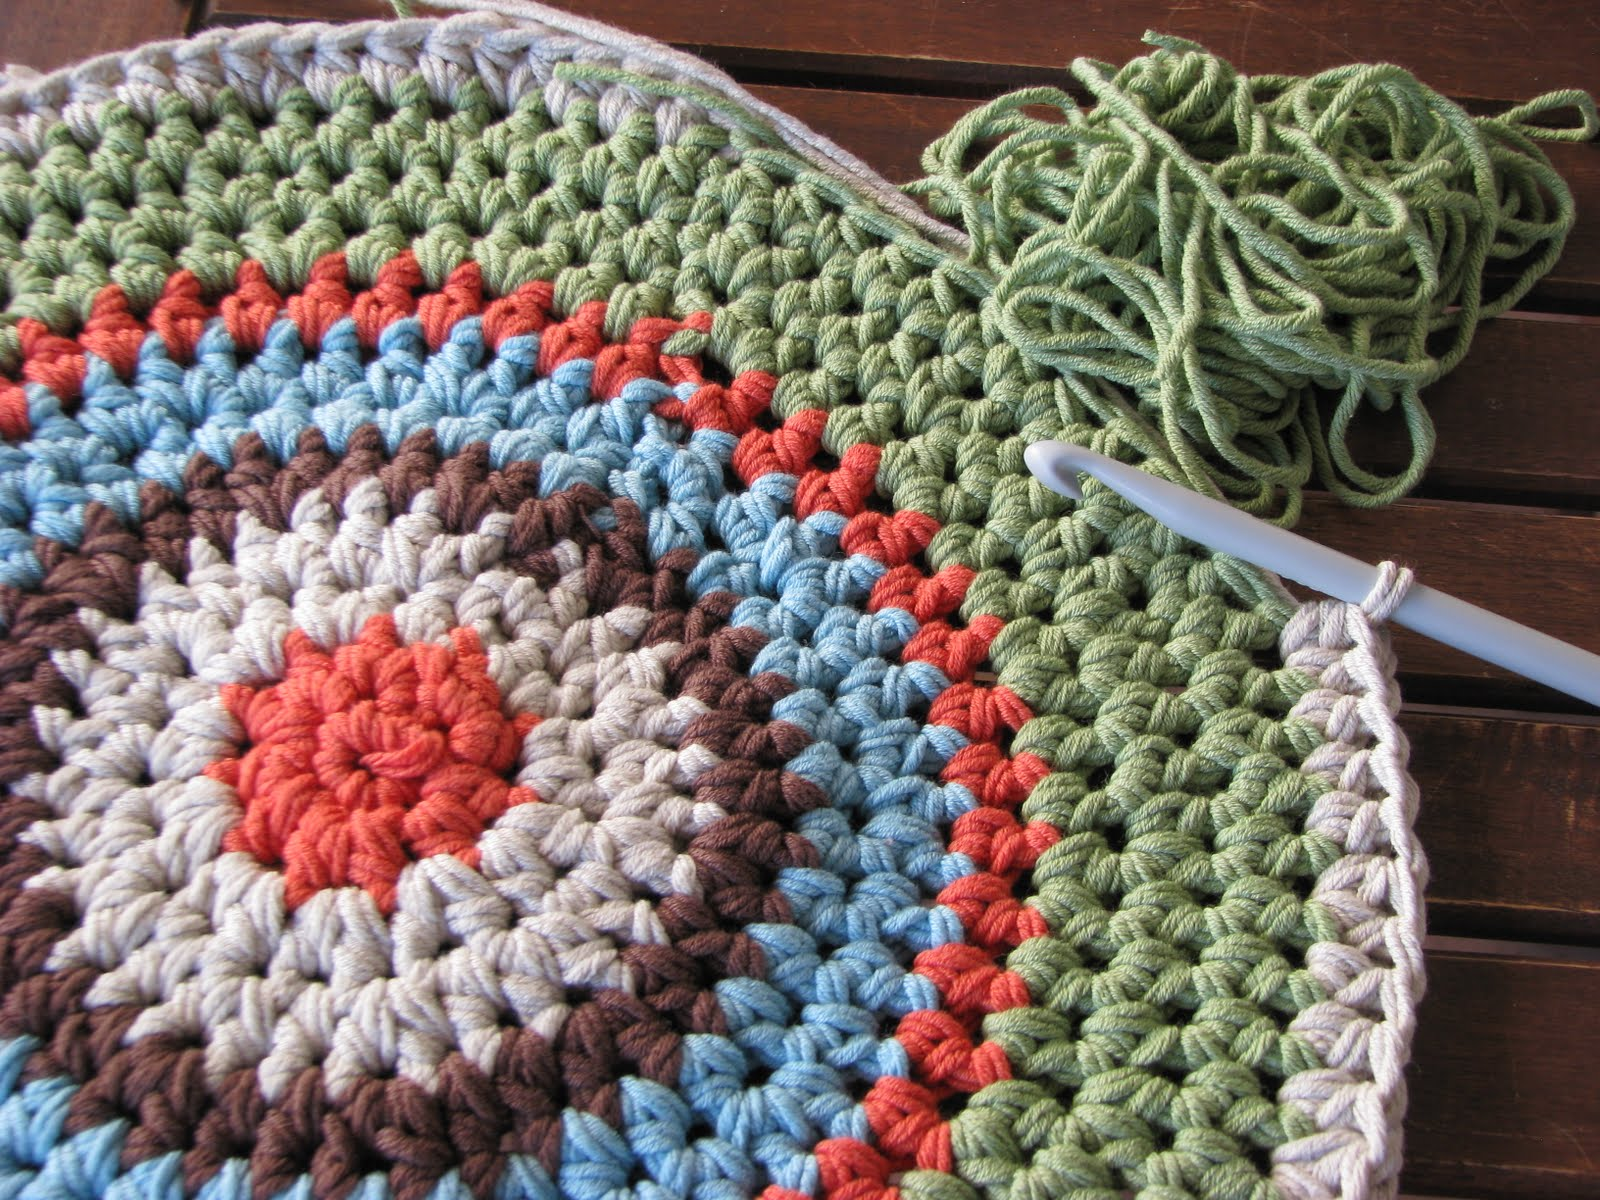 Crochet Patterns Free Rugs : CROCHET YARN RUG PATTERN - Crochet Club